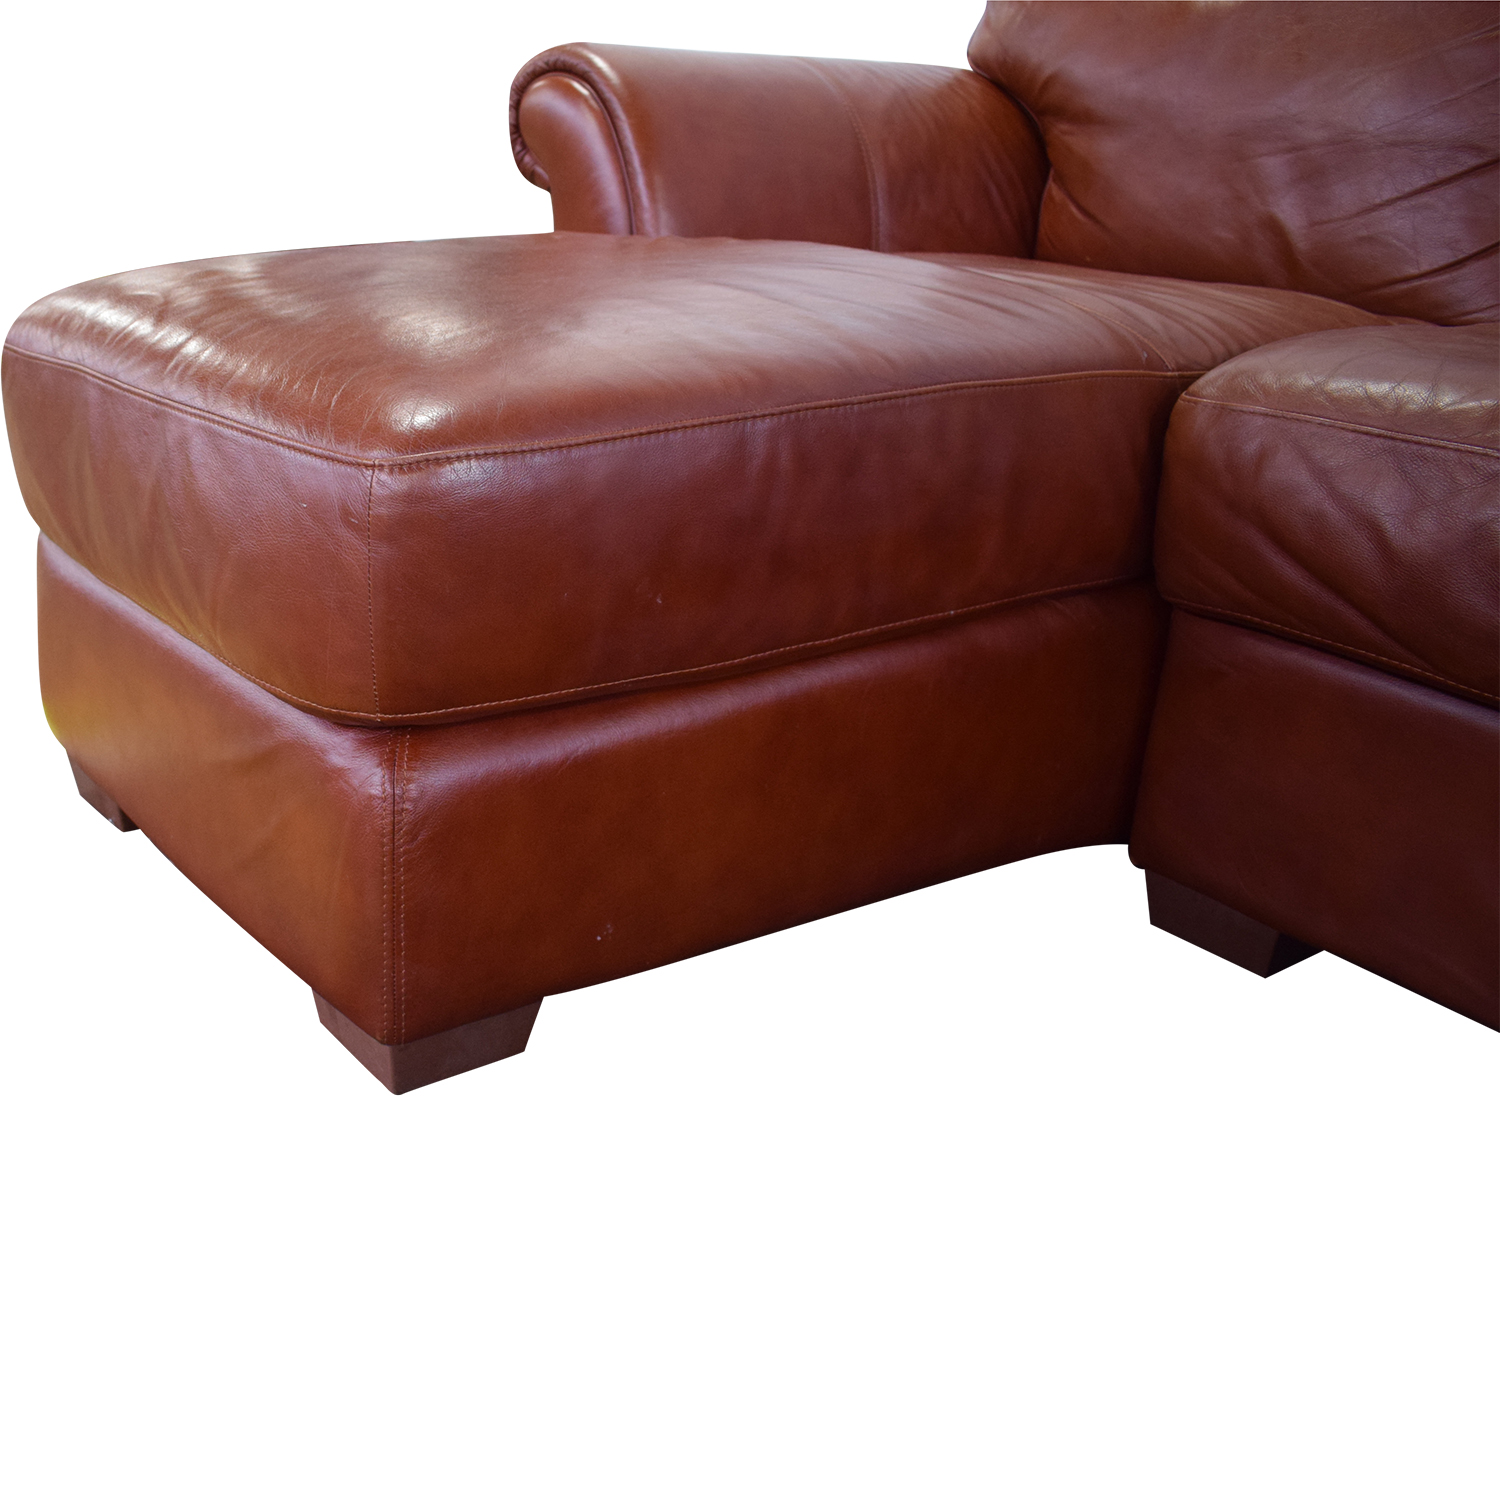 buy Chateau d'Ax Leather Sectional Chateau d'Ax